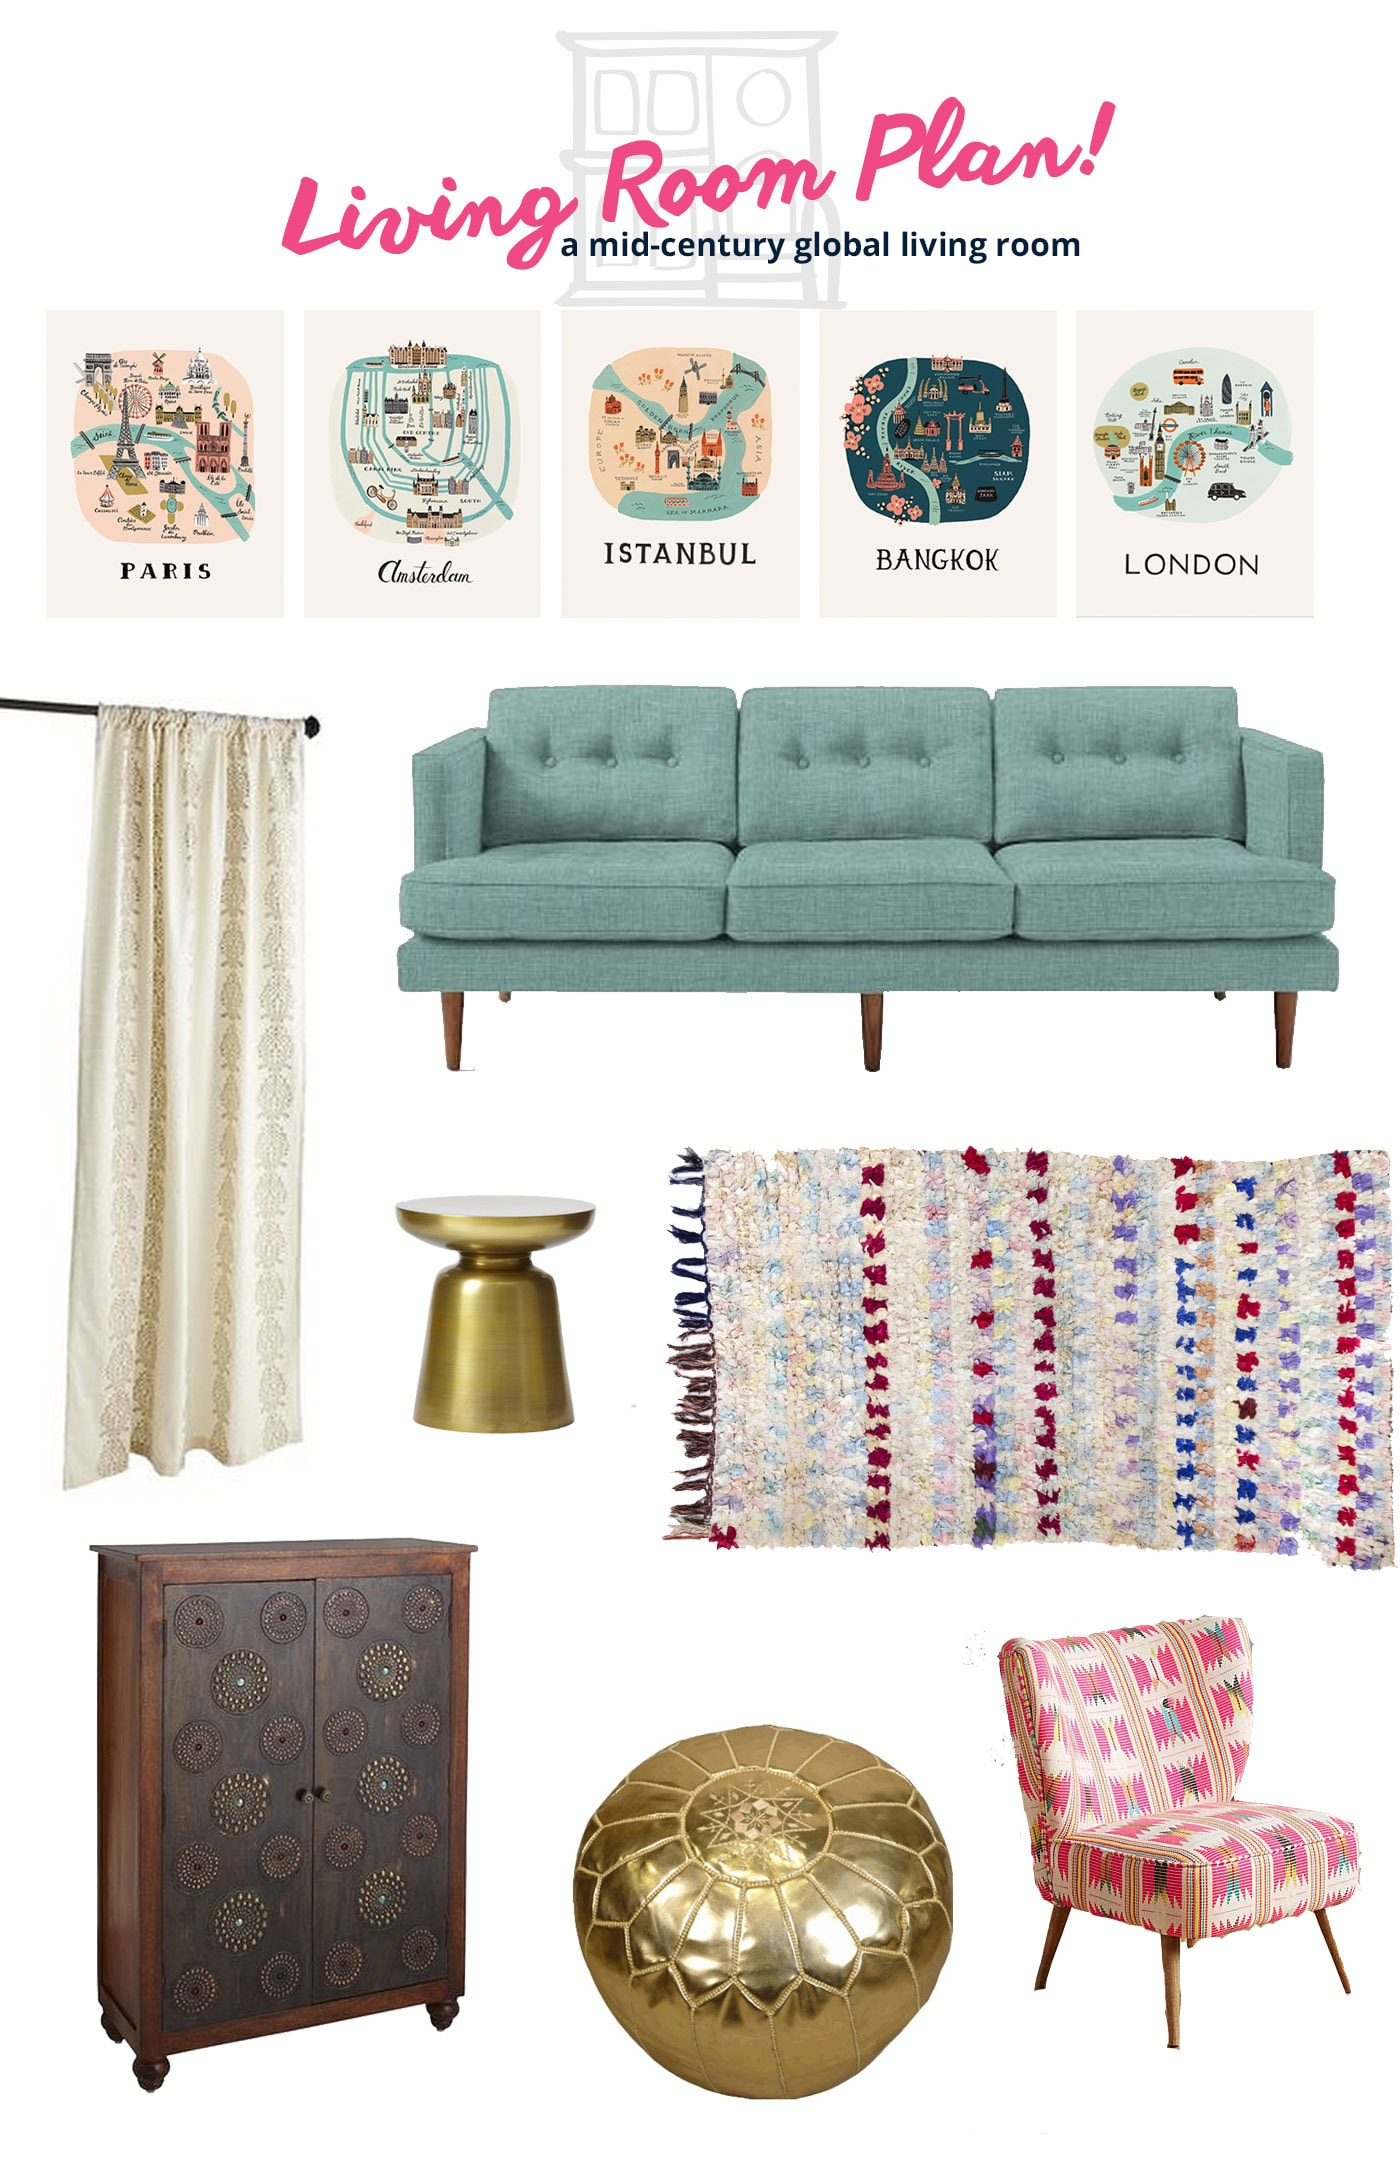 Living Room Plan: Mixing Mid-Century Modern Pieces with Global Accents in teal and pink.